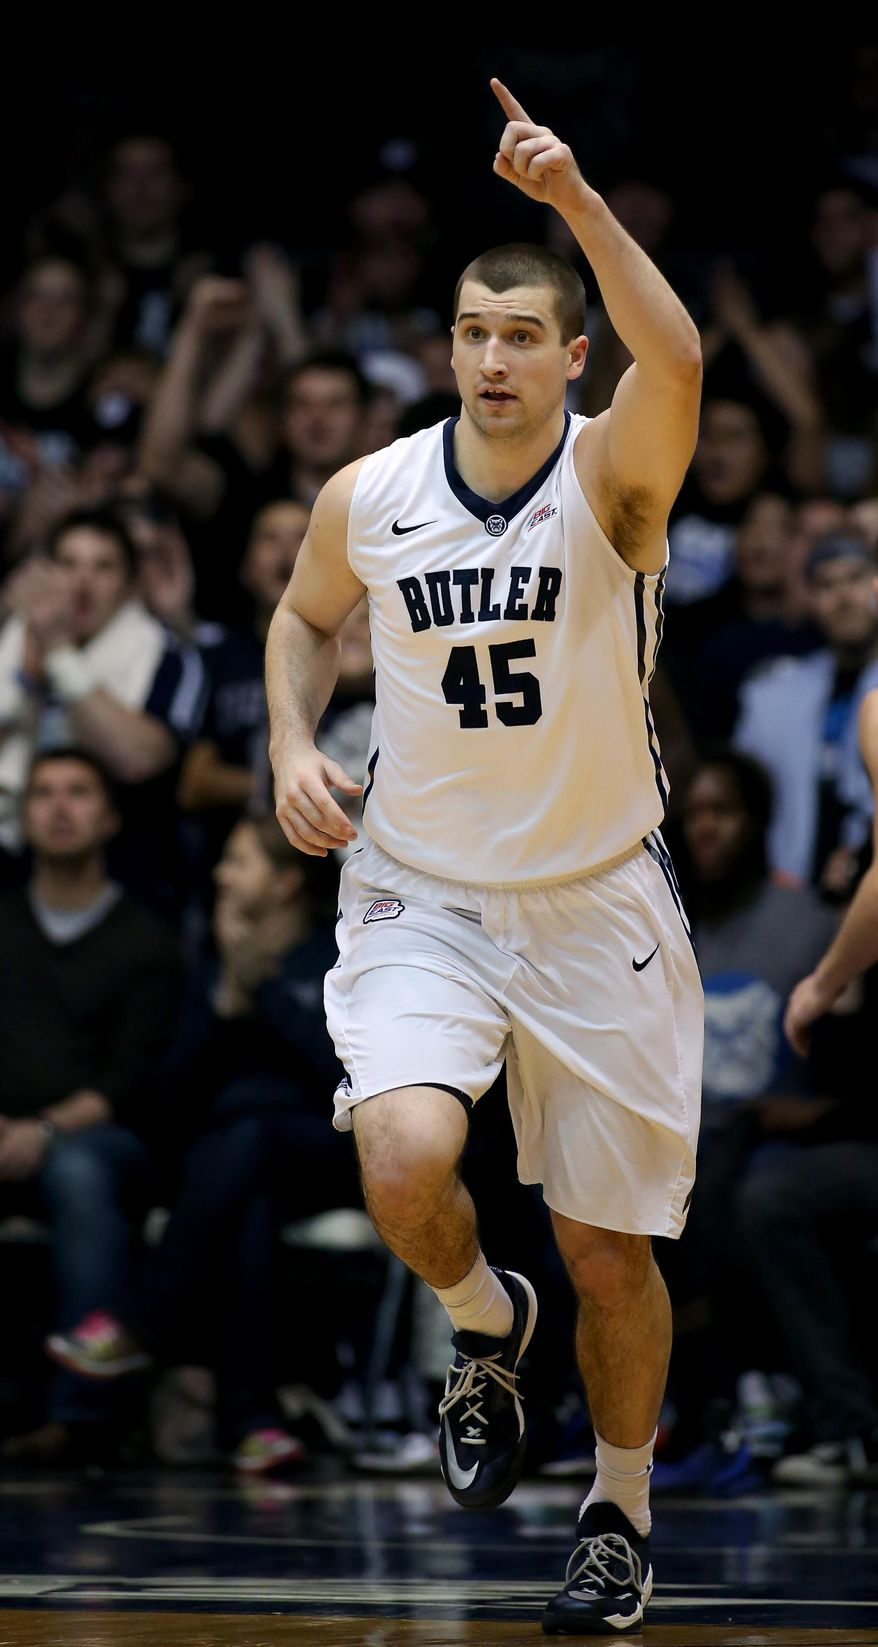 Butler forward Andrew Chrabascz (45) reacts after making a basket during the first half of an NCAA college basketball game against Seton Hall in Indianapolis, Ind., Sunday, Jan. 25, 2015. (AP Photo/Sam Riche)